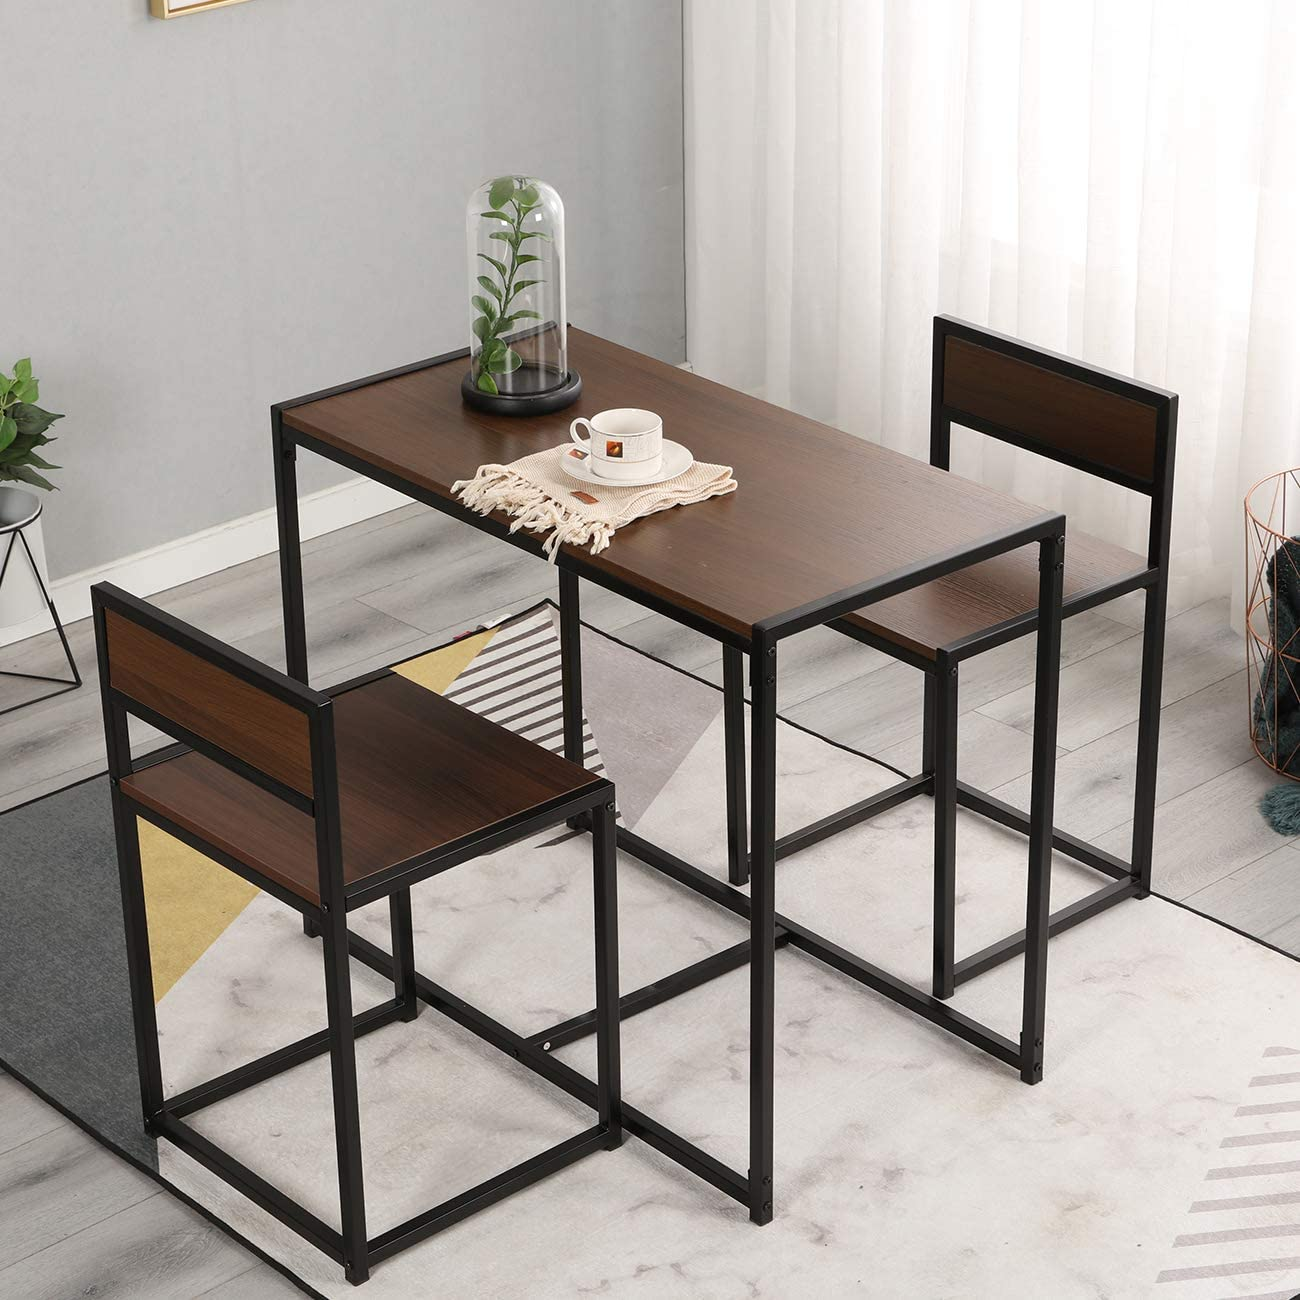 Sogeshome 3 Piece Dining Table And Chairs Dining Set Bar Set For 2 Dining Table For Dining Room Bistro Set Brown Nsdca Ld Ct01wnt Amazon Ca Home Kitchen